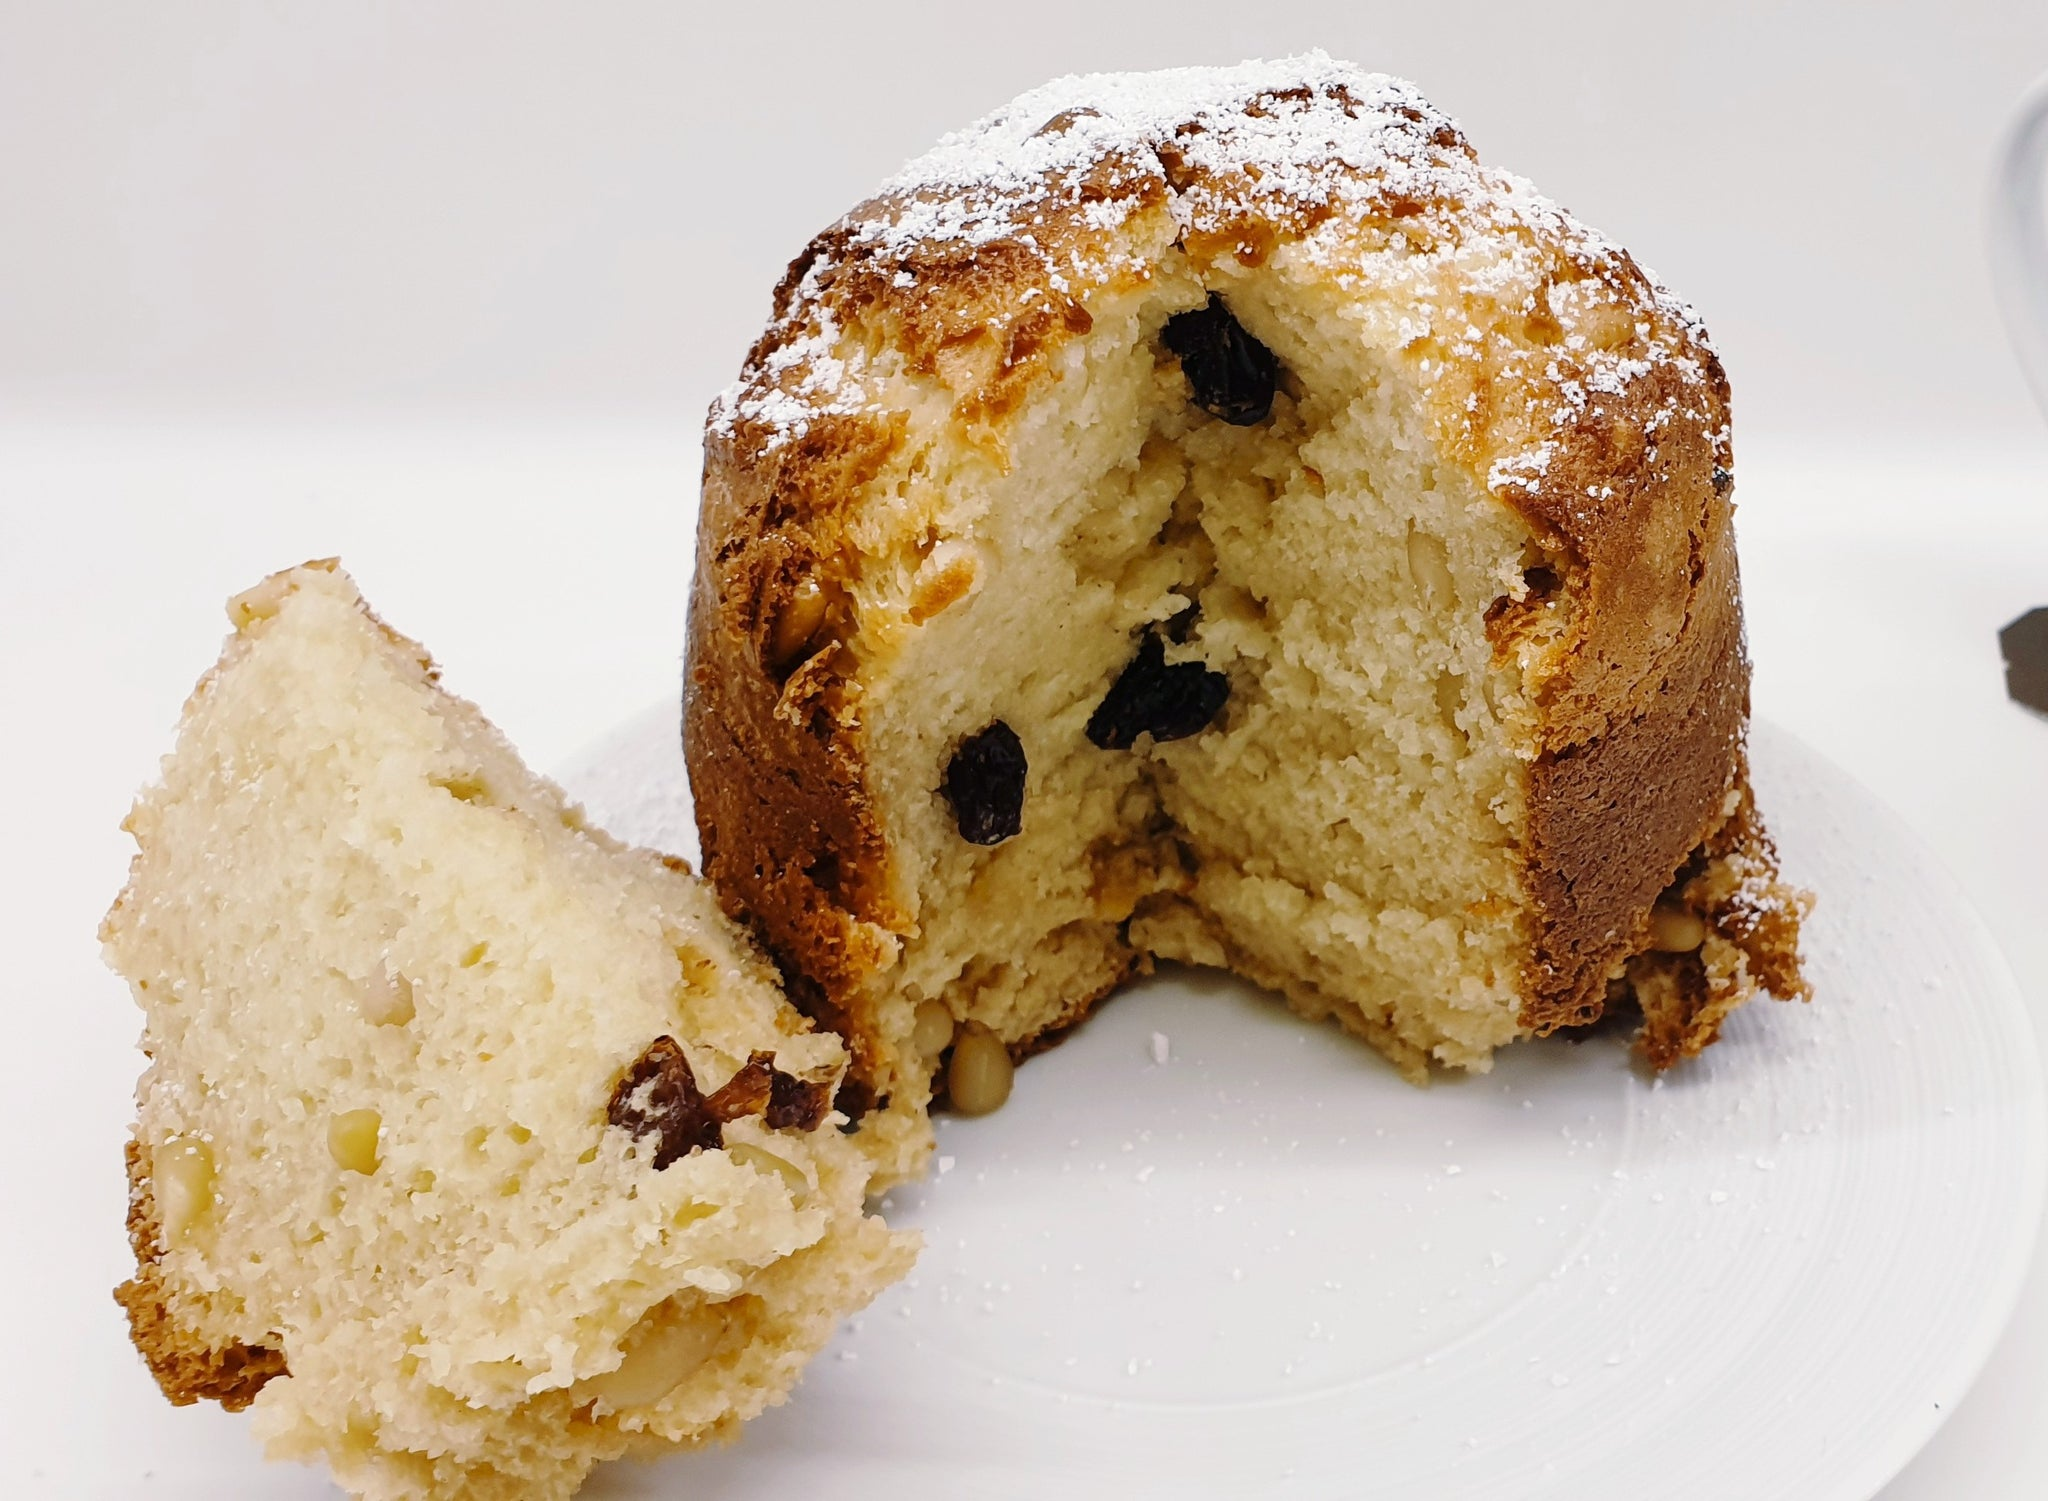 Baked Ricotta Cake with Raisins and Pine Nuts